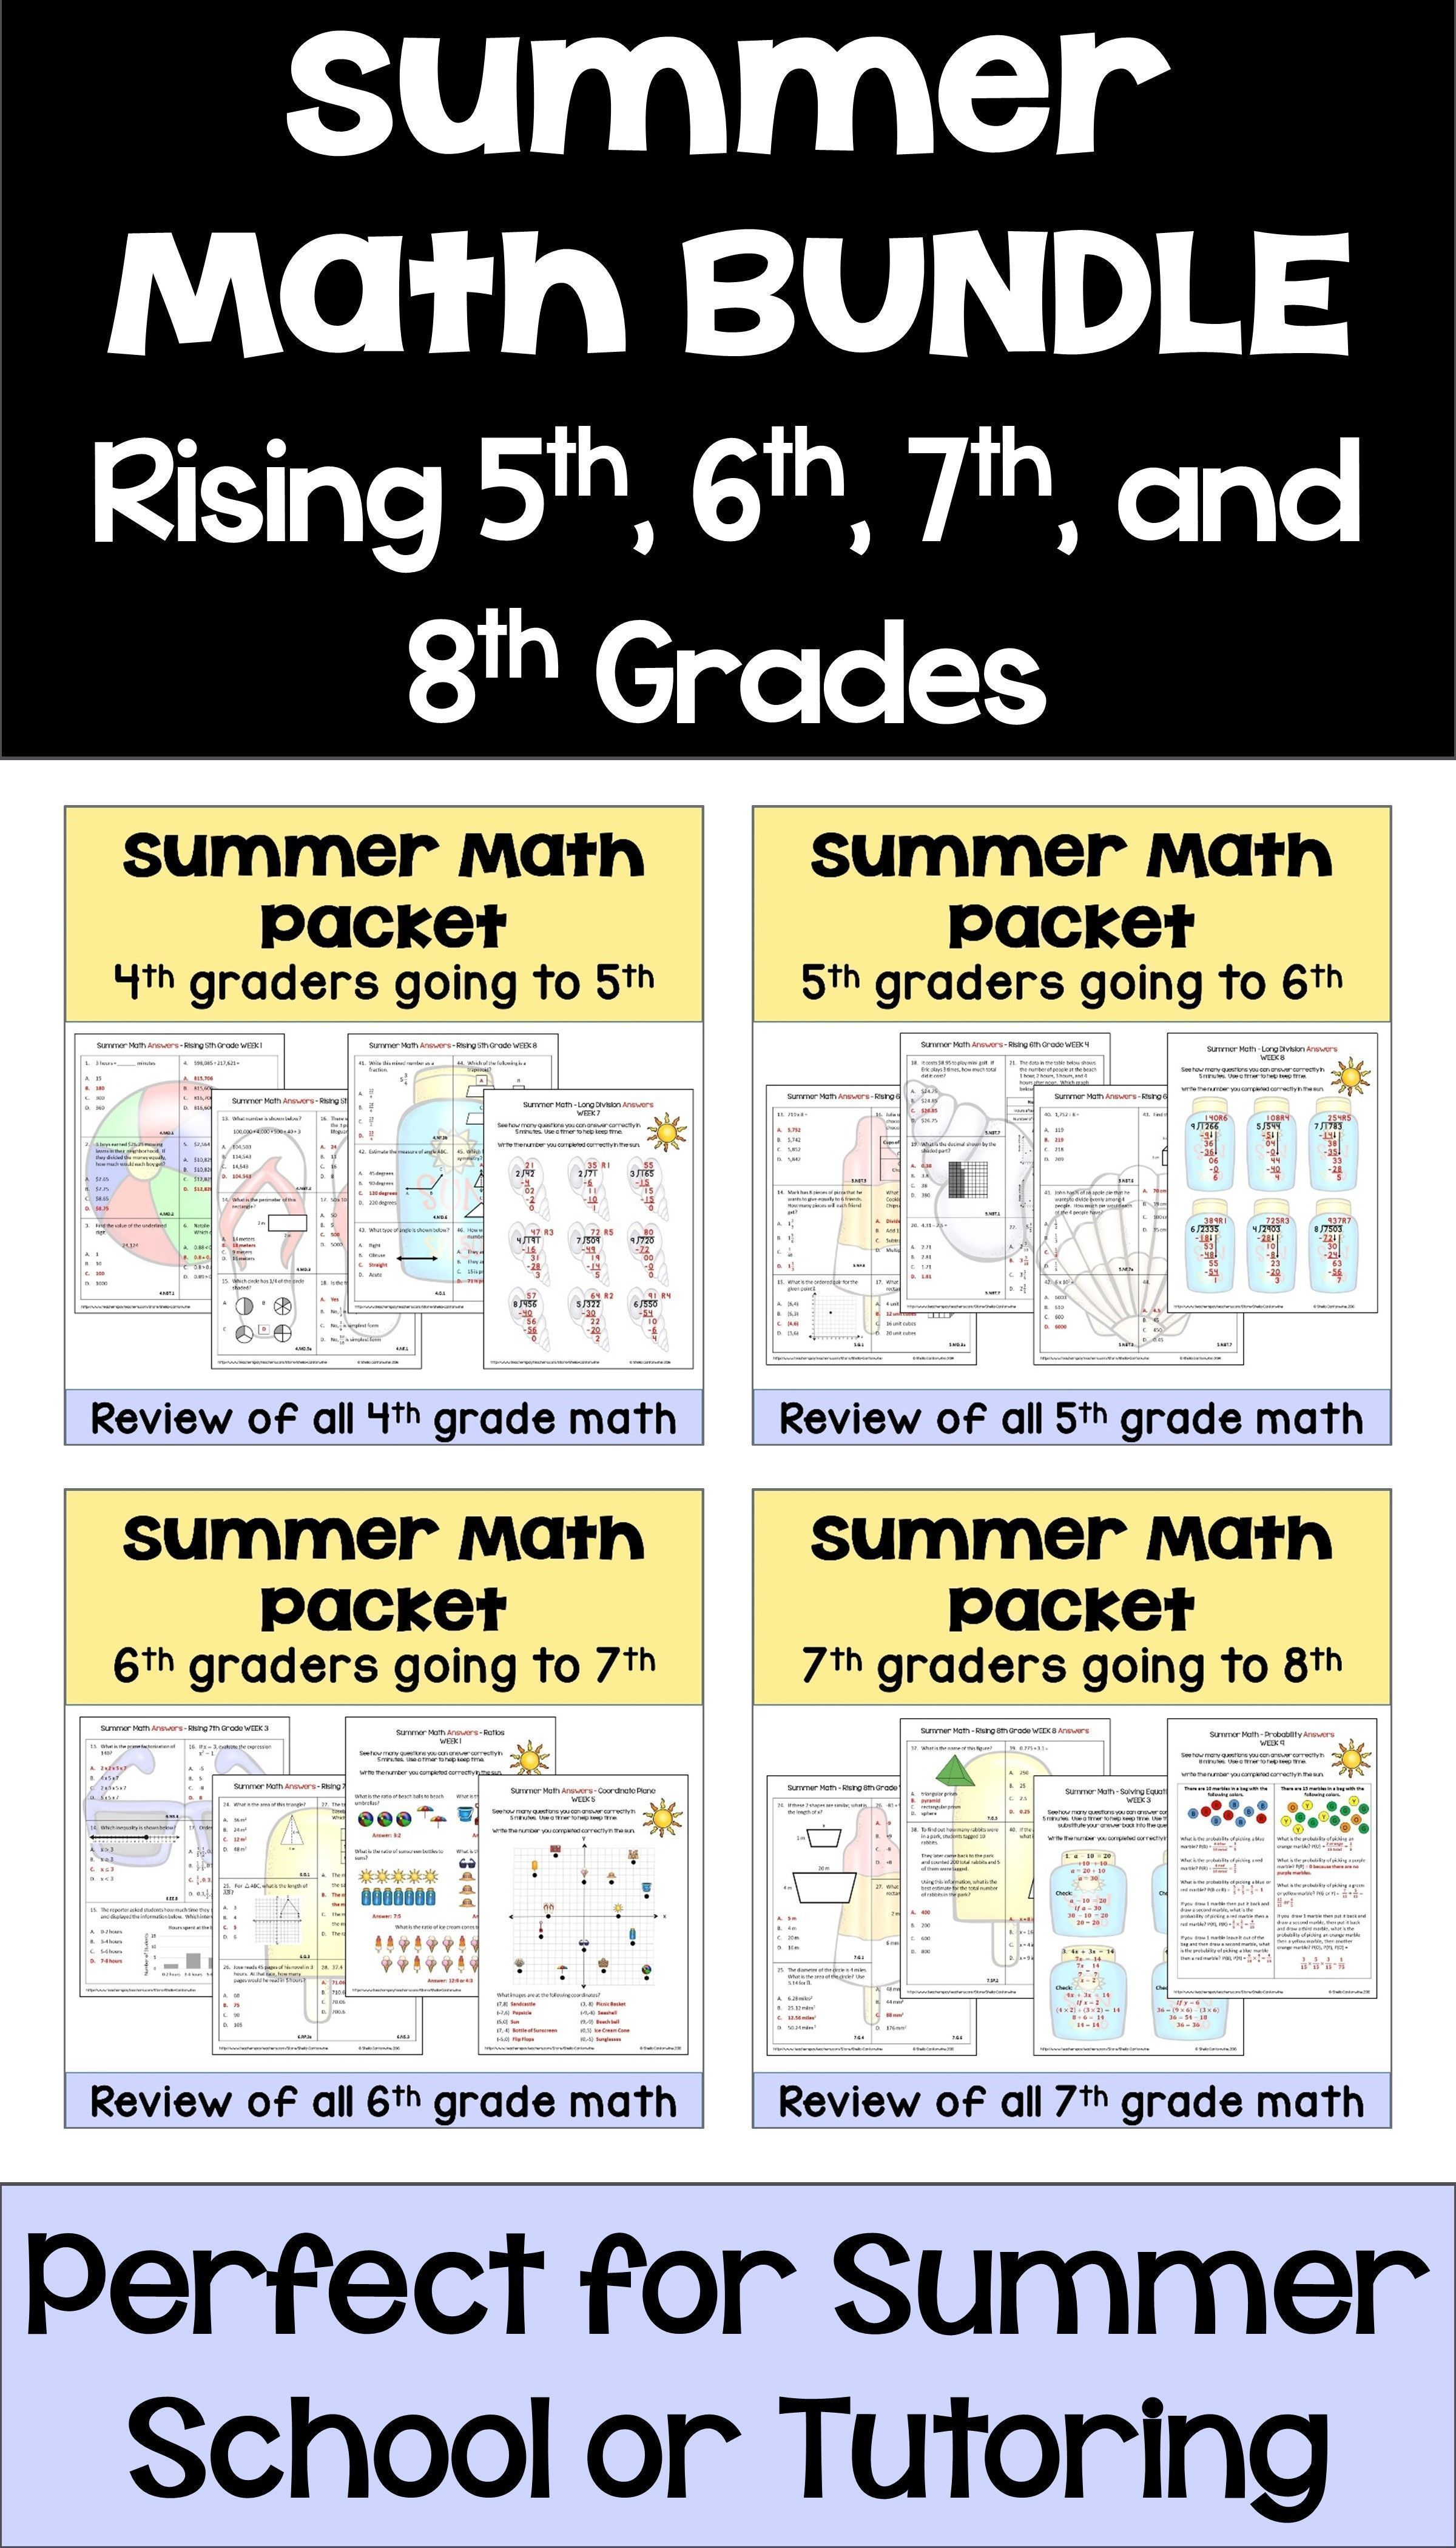 This Summer Math Bundle For Rising 5th 6th 7th And 8th